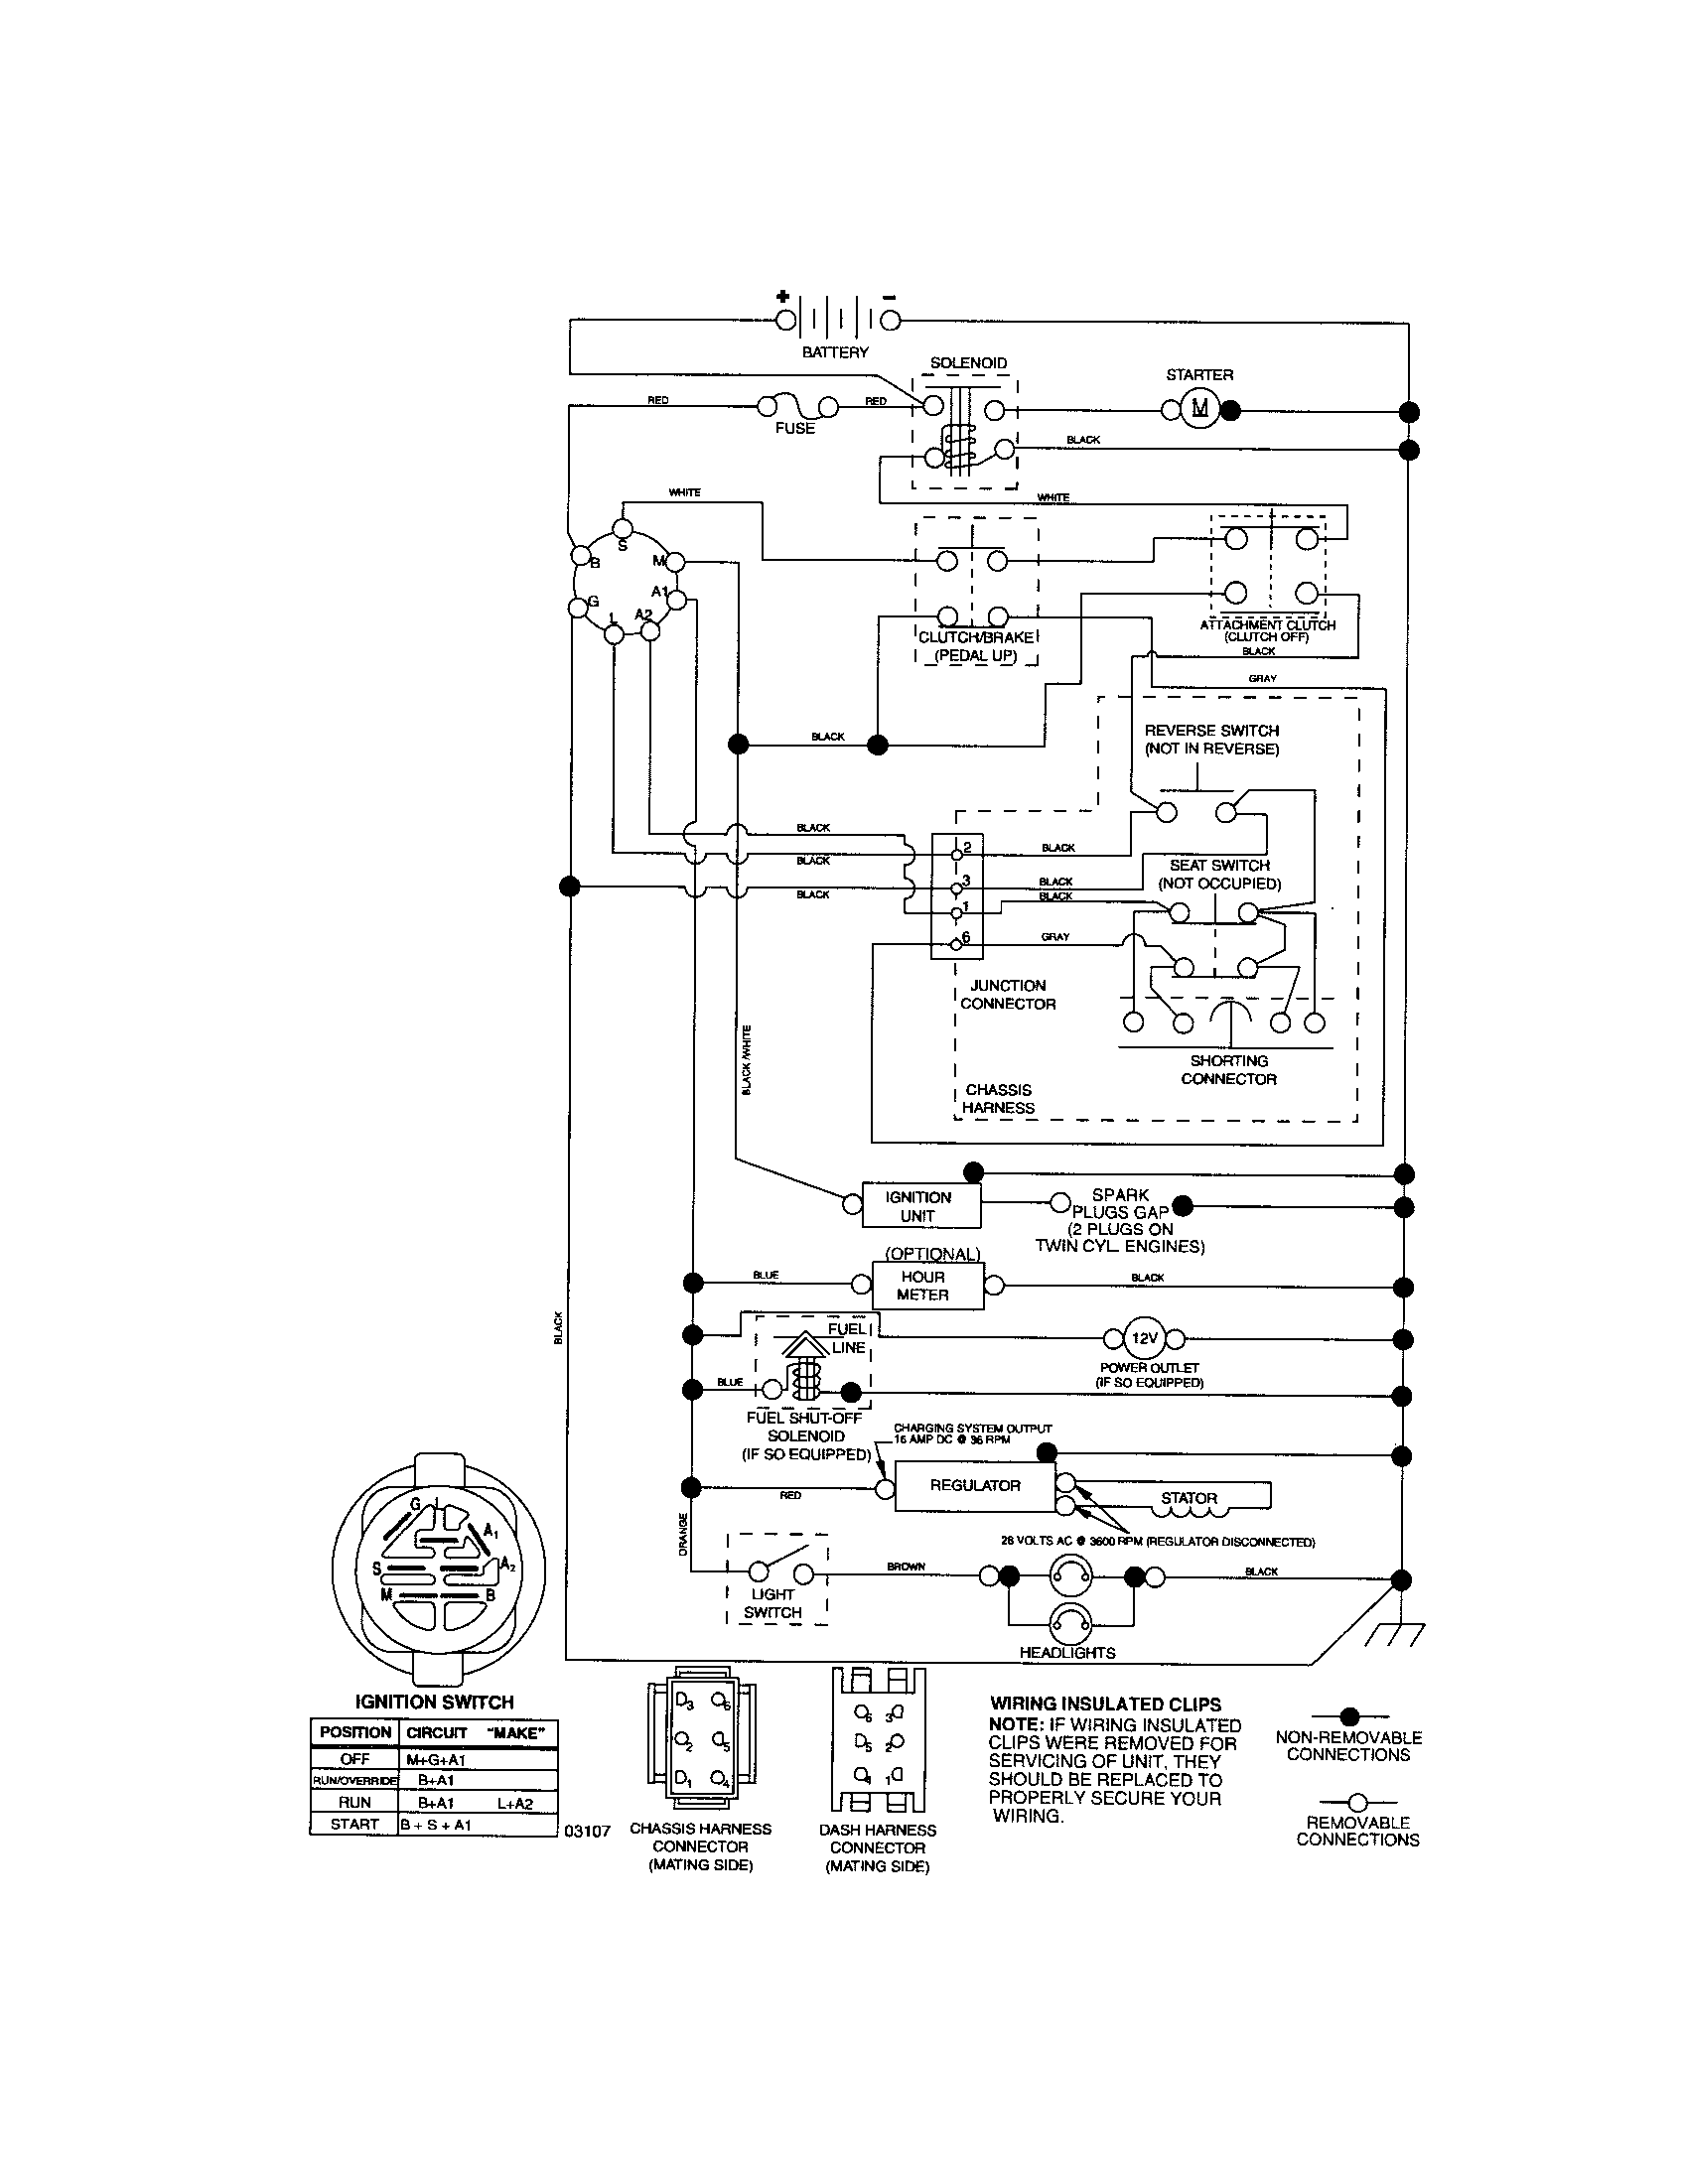 6af5f1447fd13c8443376822ddc1e105 craftsman riding mower electrical diagram wiring diagram wiring diagram for riding lawn mower at alyssarenee.co